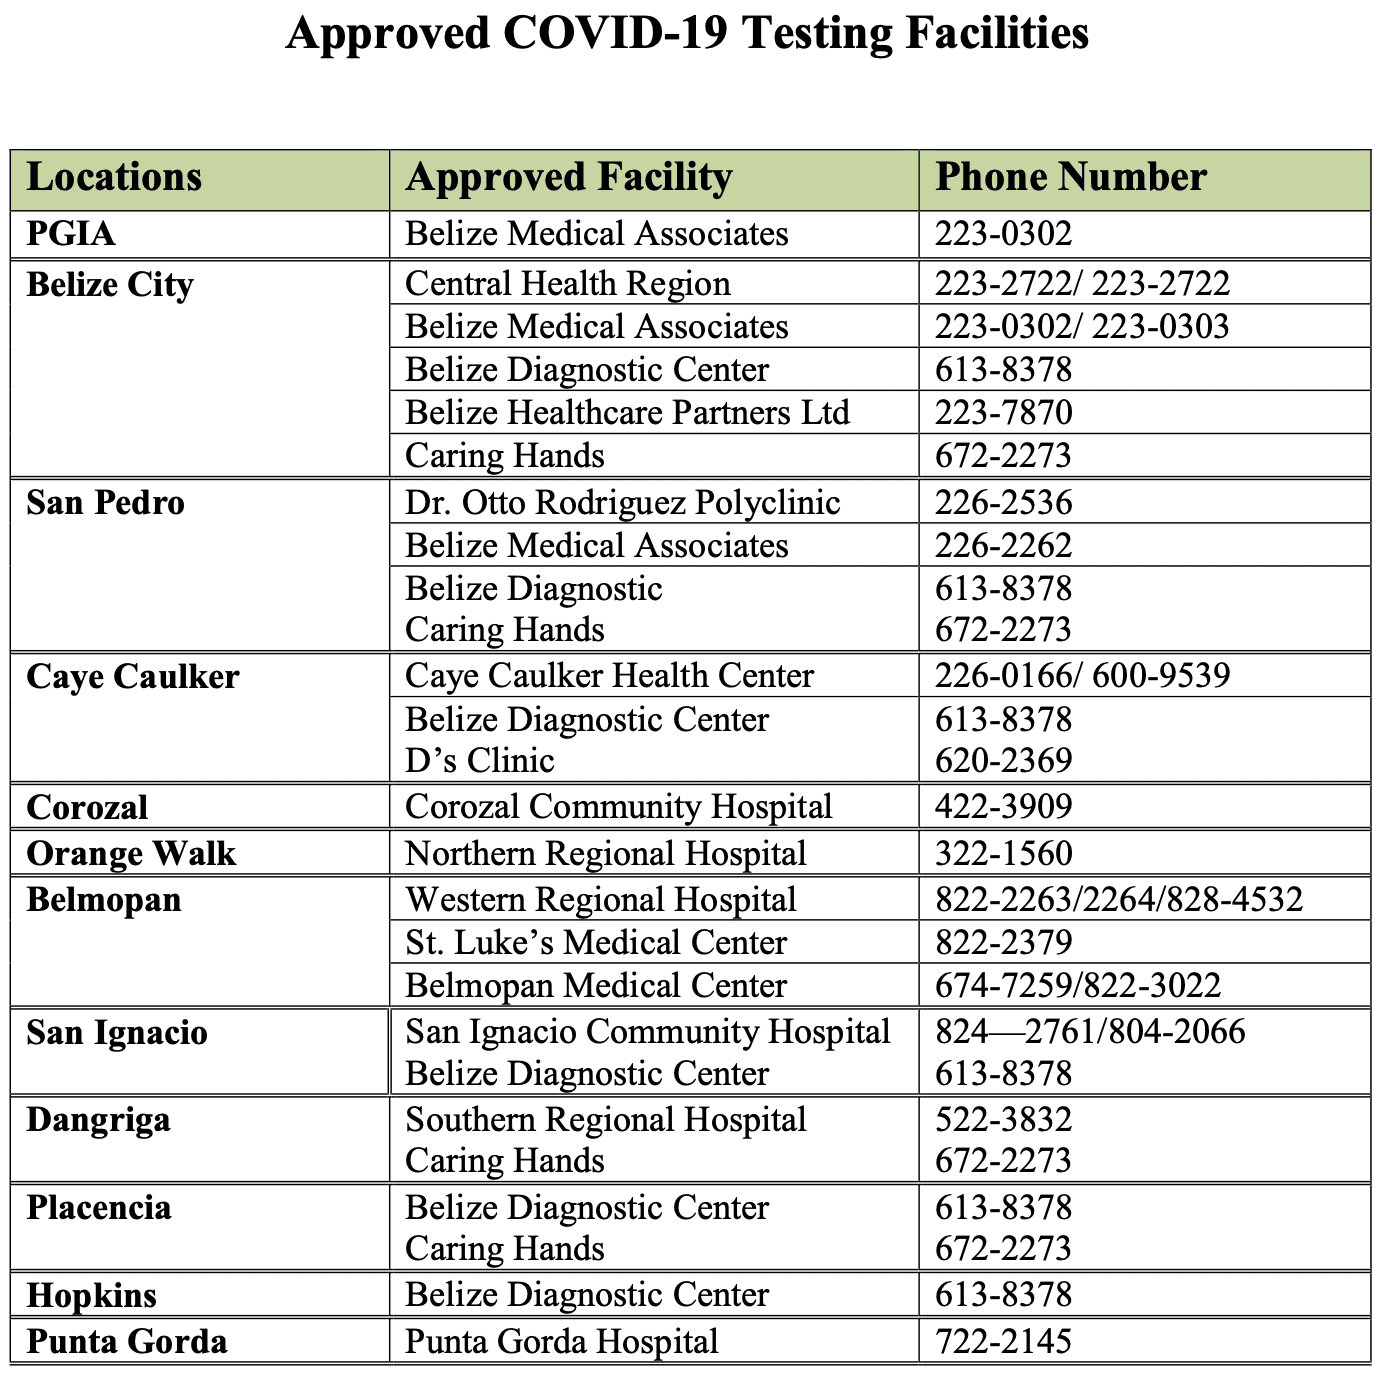 approved covid testing facilities MOHW belize